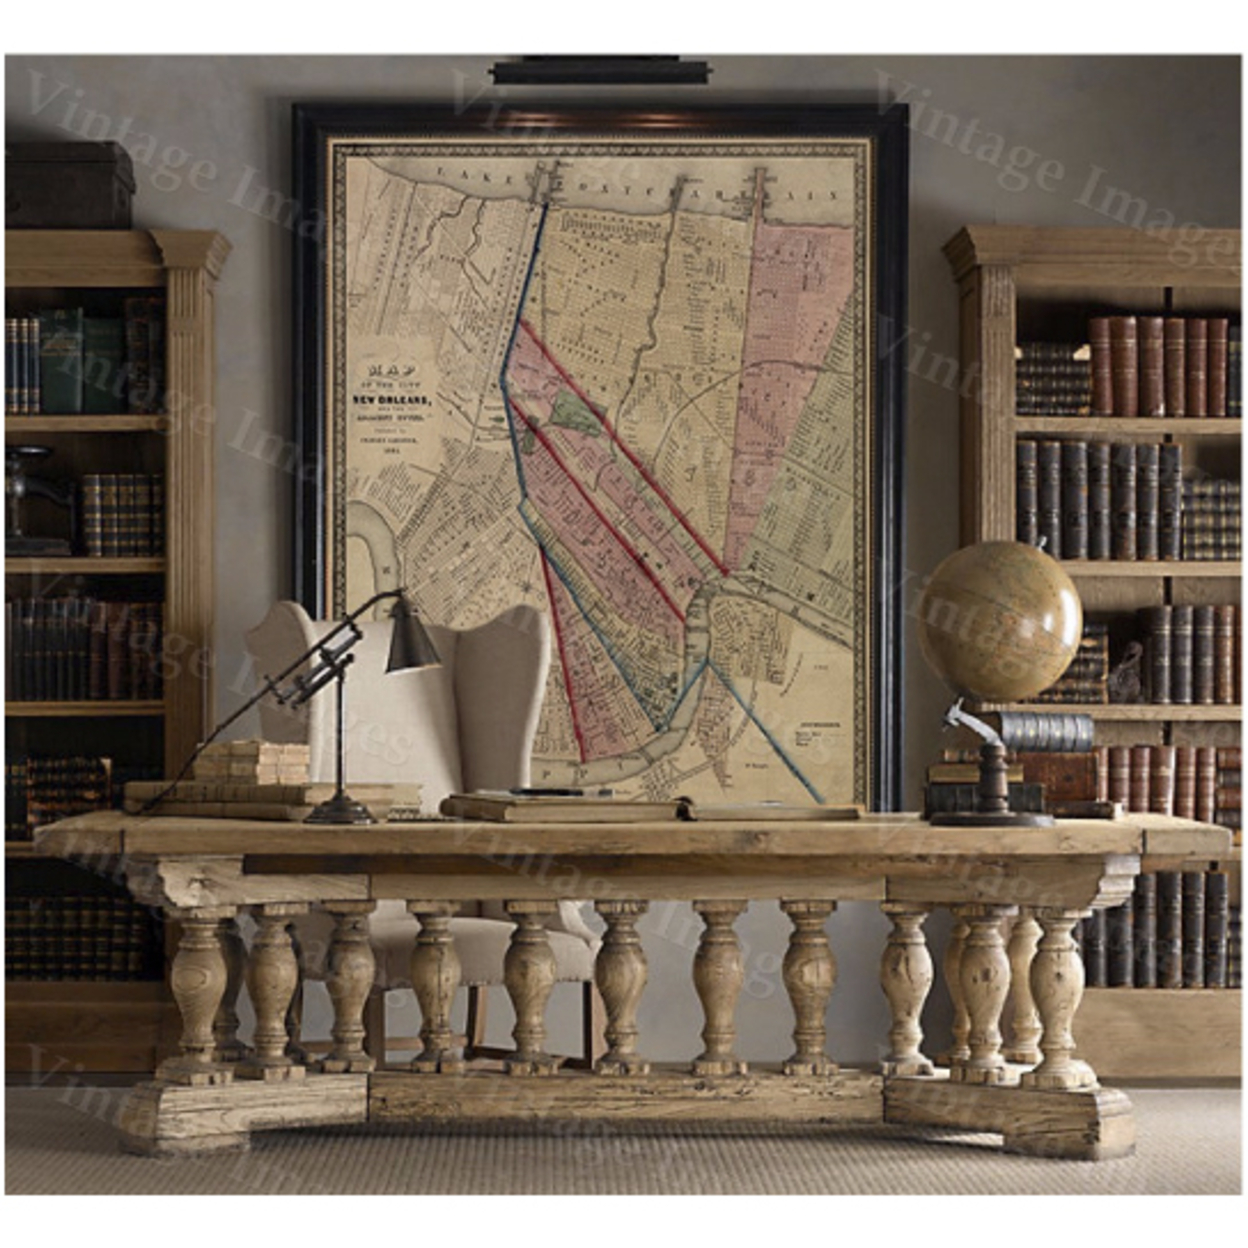 """Vintage Map New Orleans Map Louisiana Historic Restoration Style Map of New Orleans Fine Art Print Large wall map Home office coporate decor - 16\"""" x 20\"""" inches [$17.44] 56d236464b3d6f2e028b48fb"""